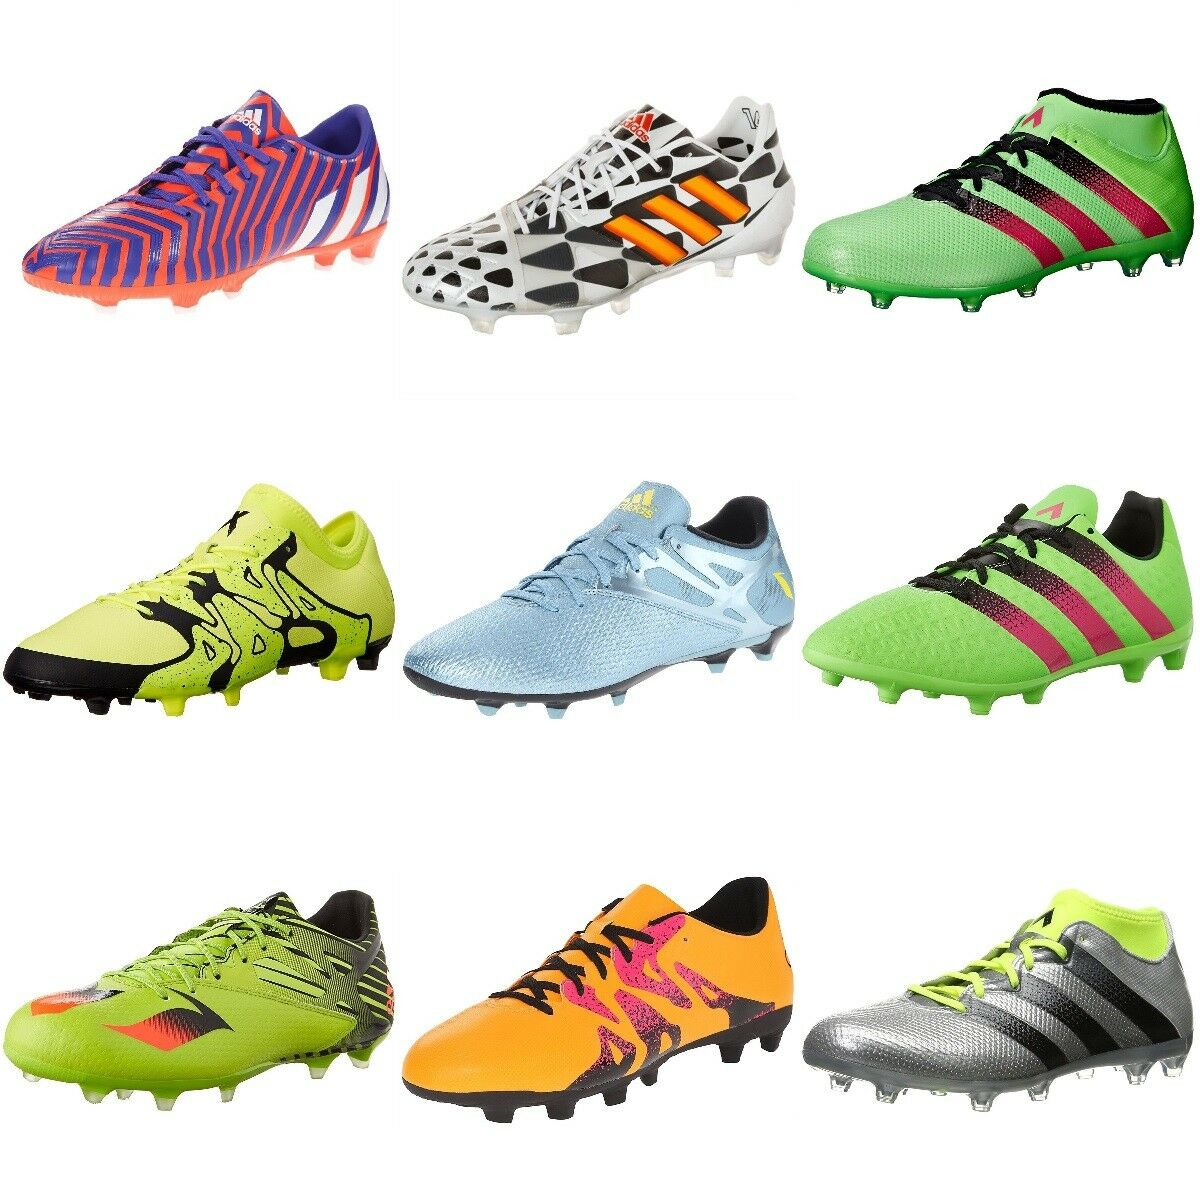 NEW Adidas Men's Athletic FG AG Soccer shoes Cleats Size color Models